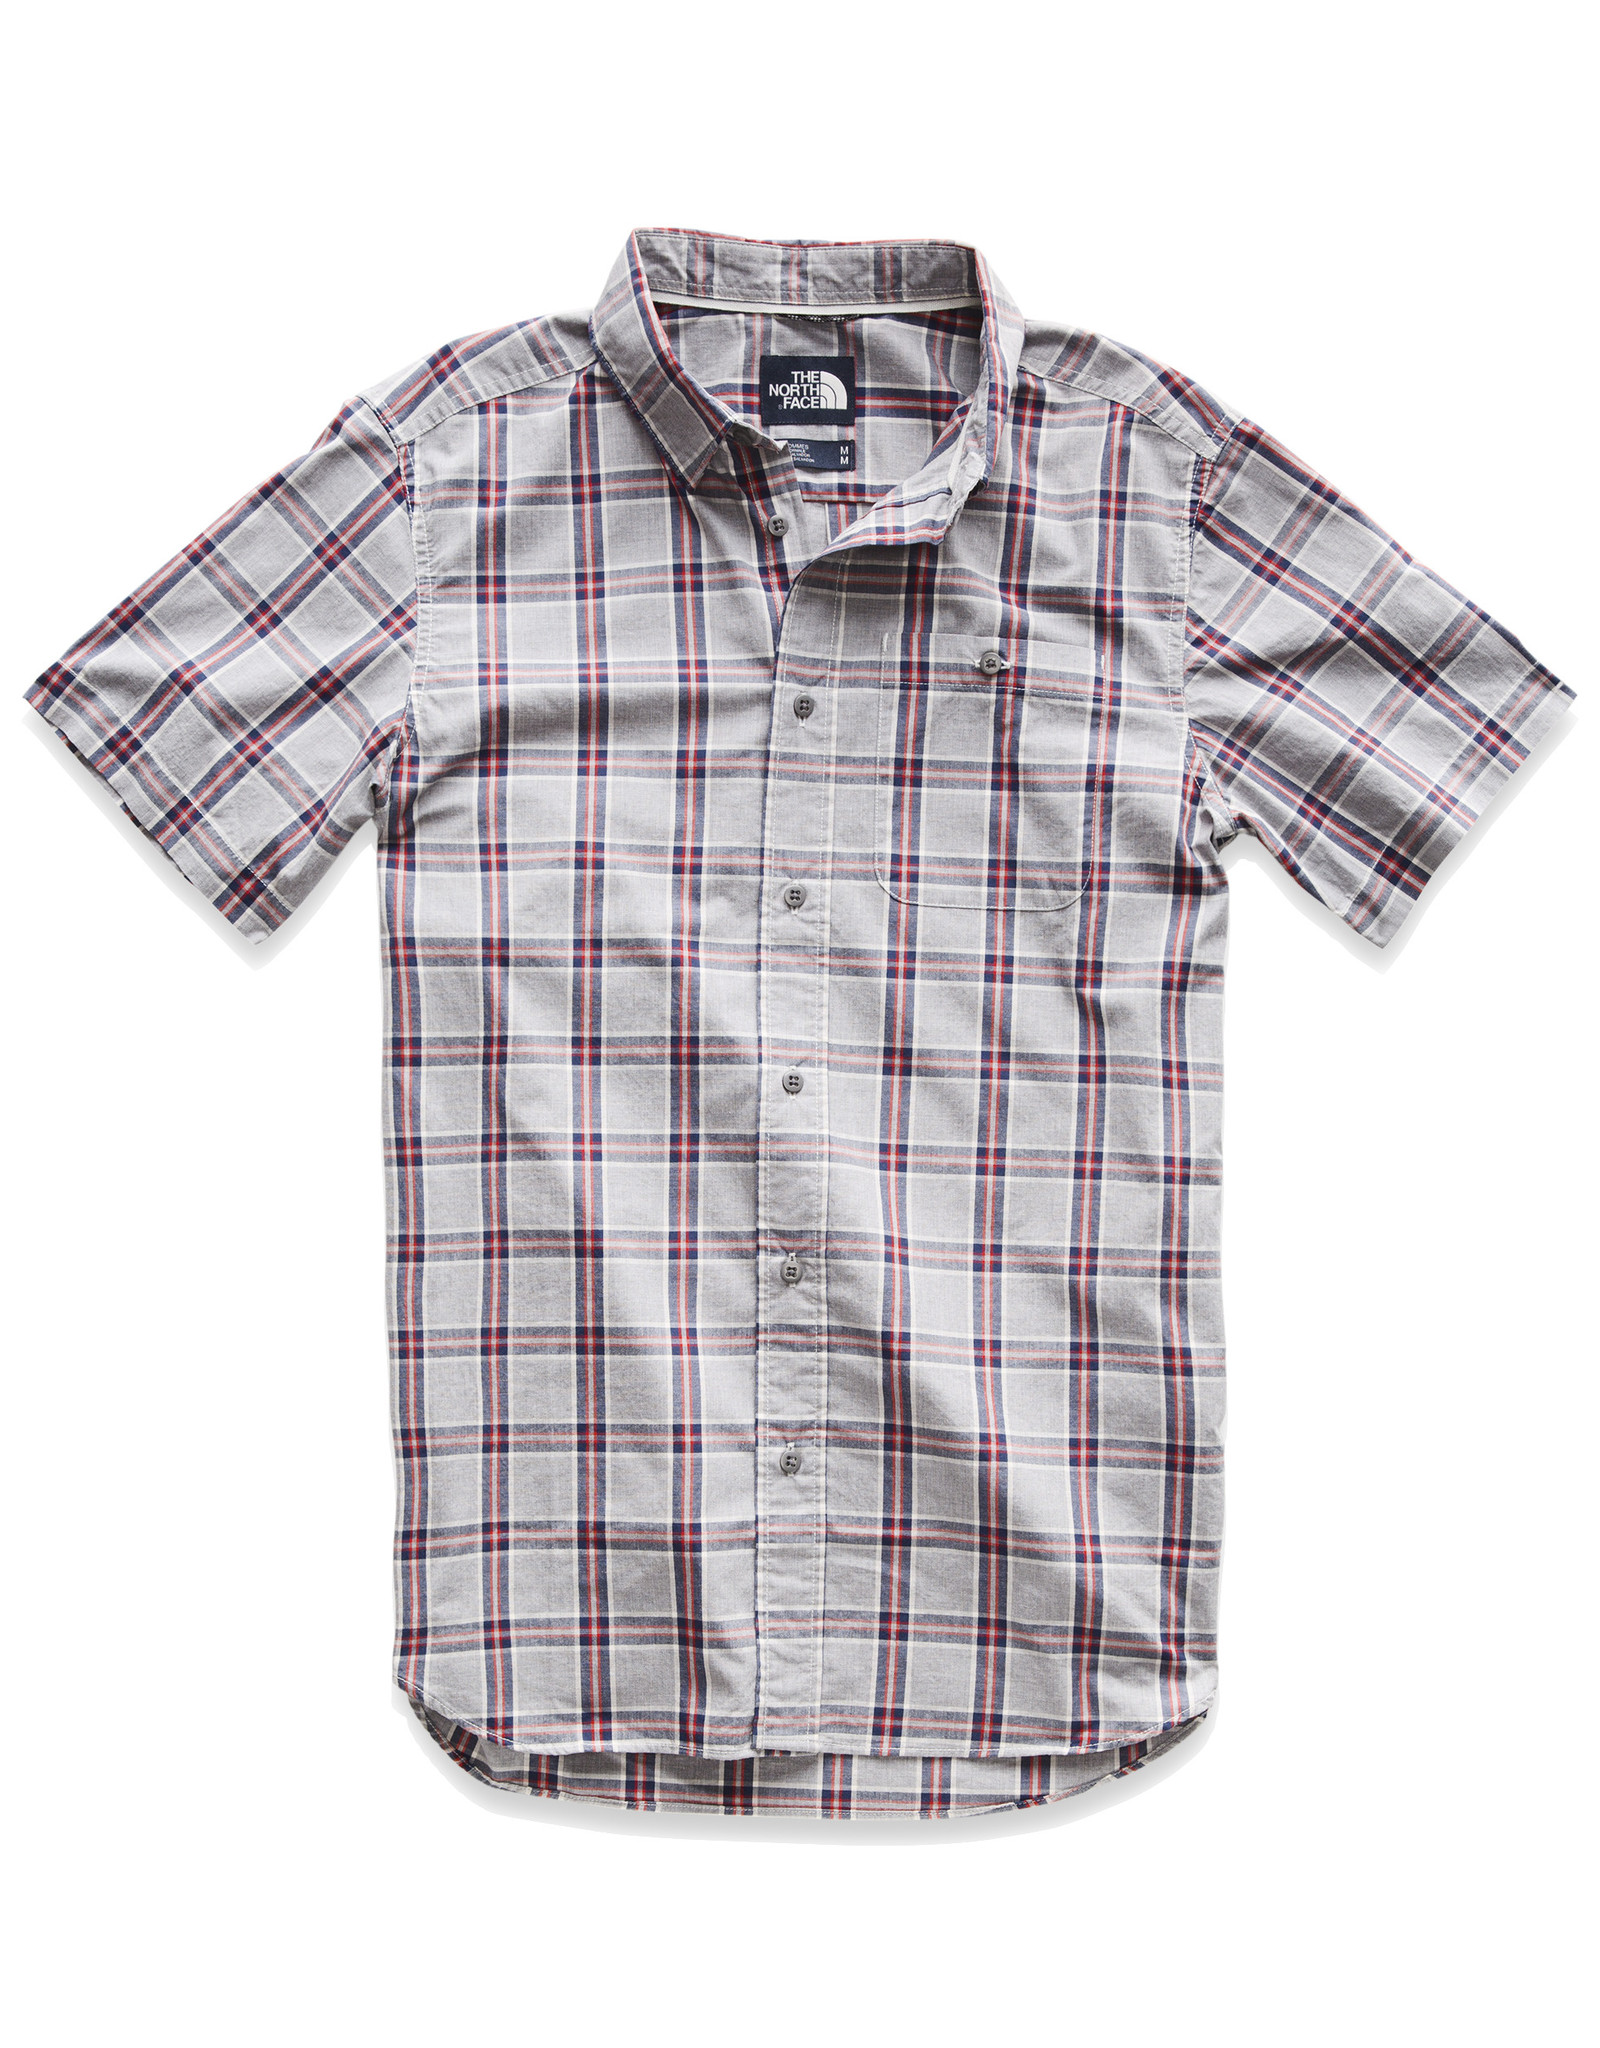 The North Face The North Face Men's S/S Buttonwood Shirt - S2019